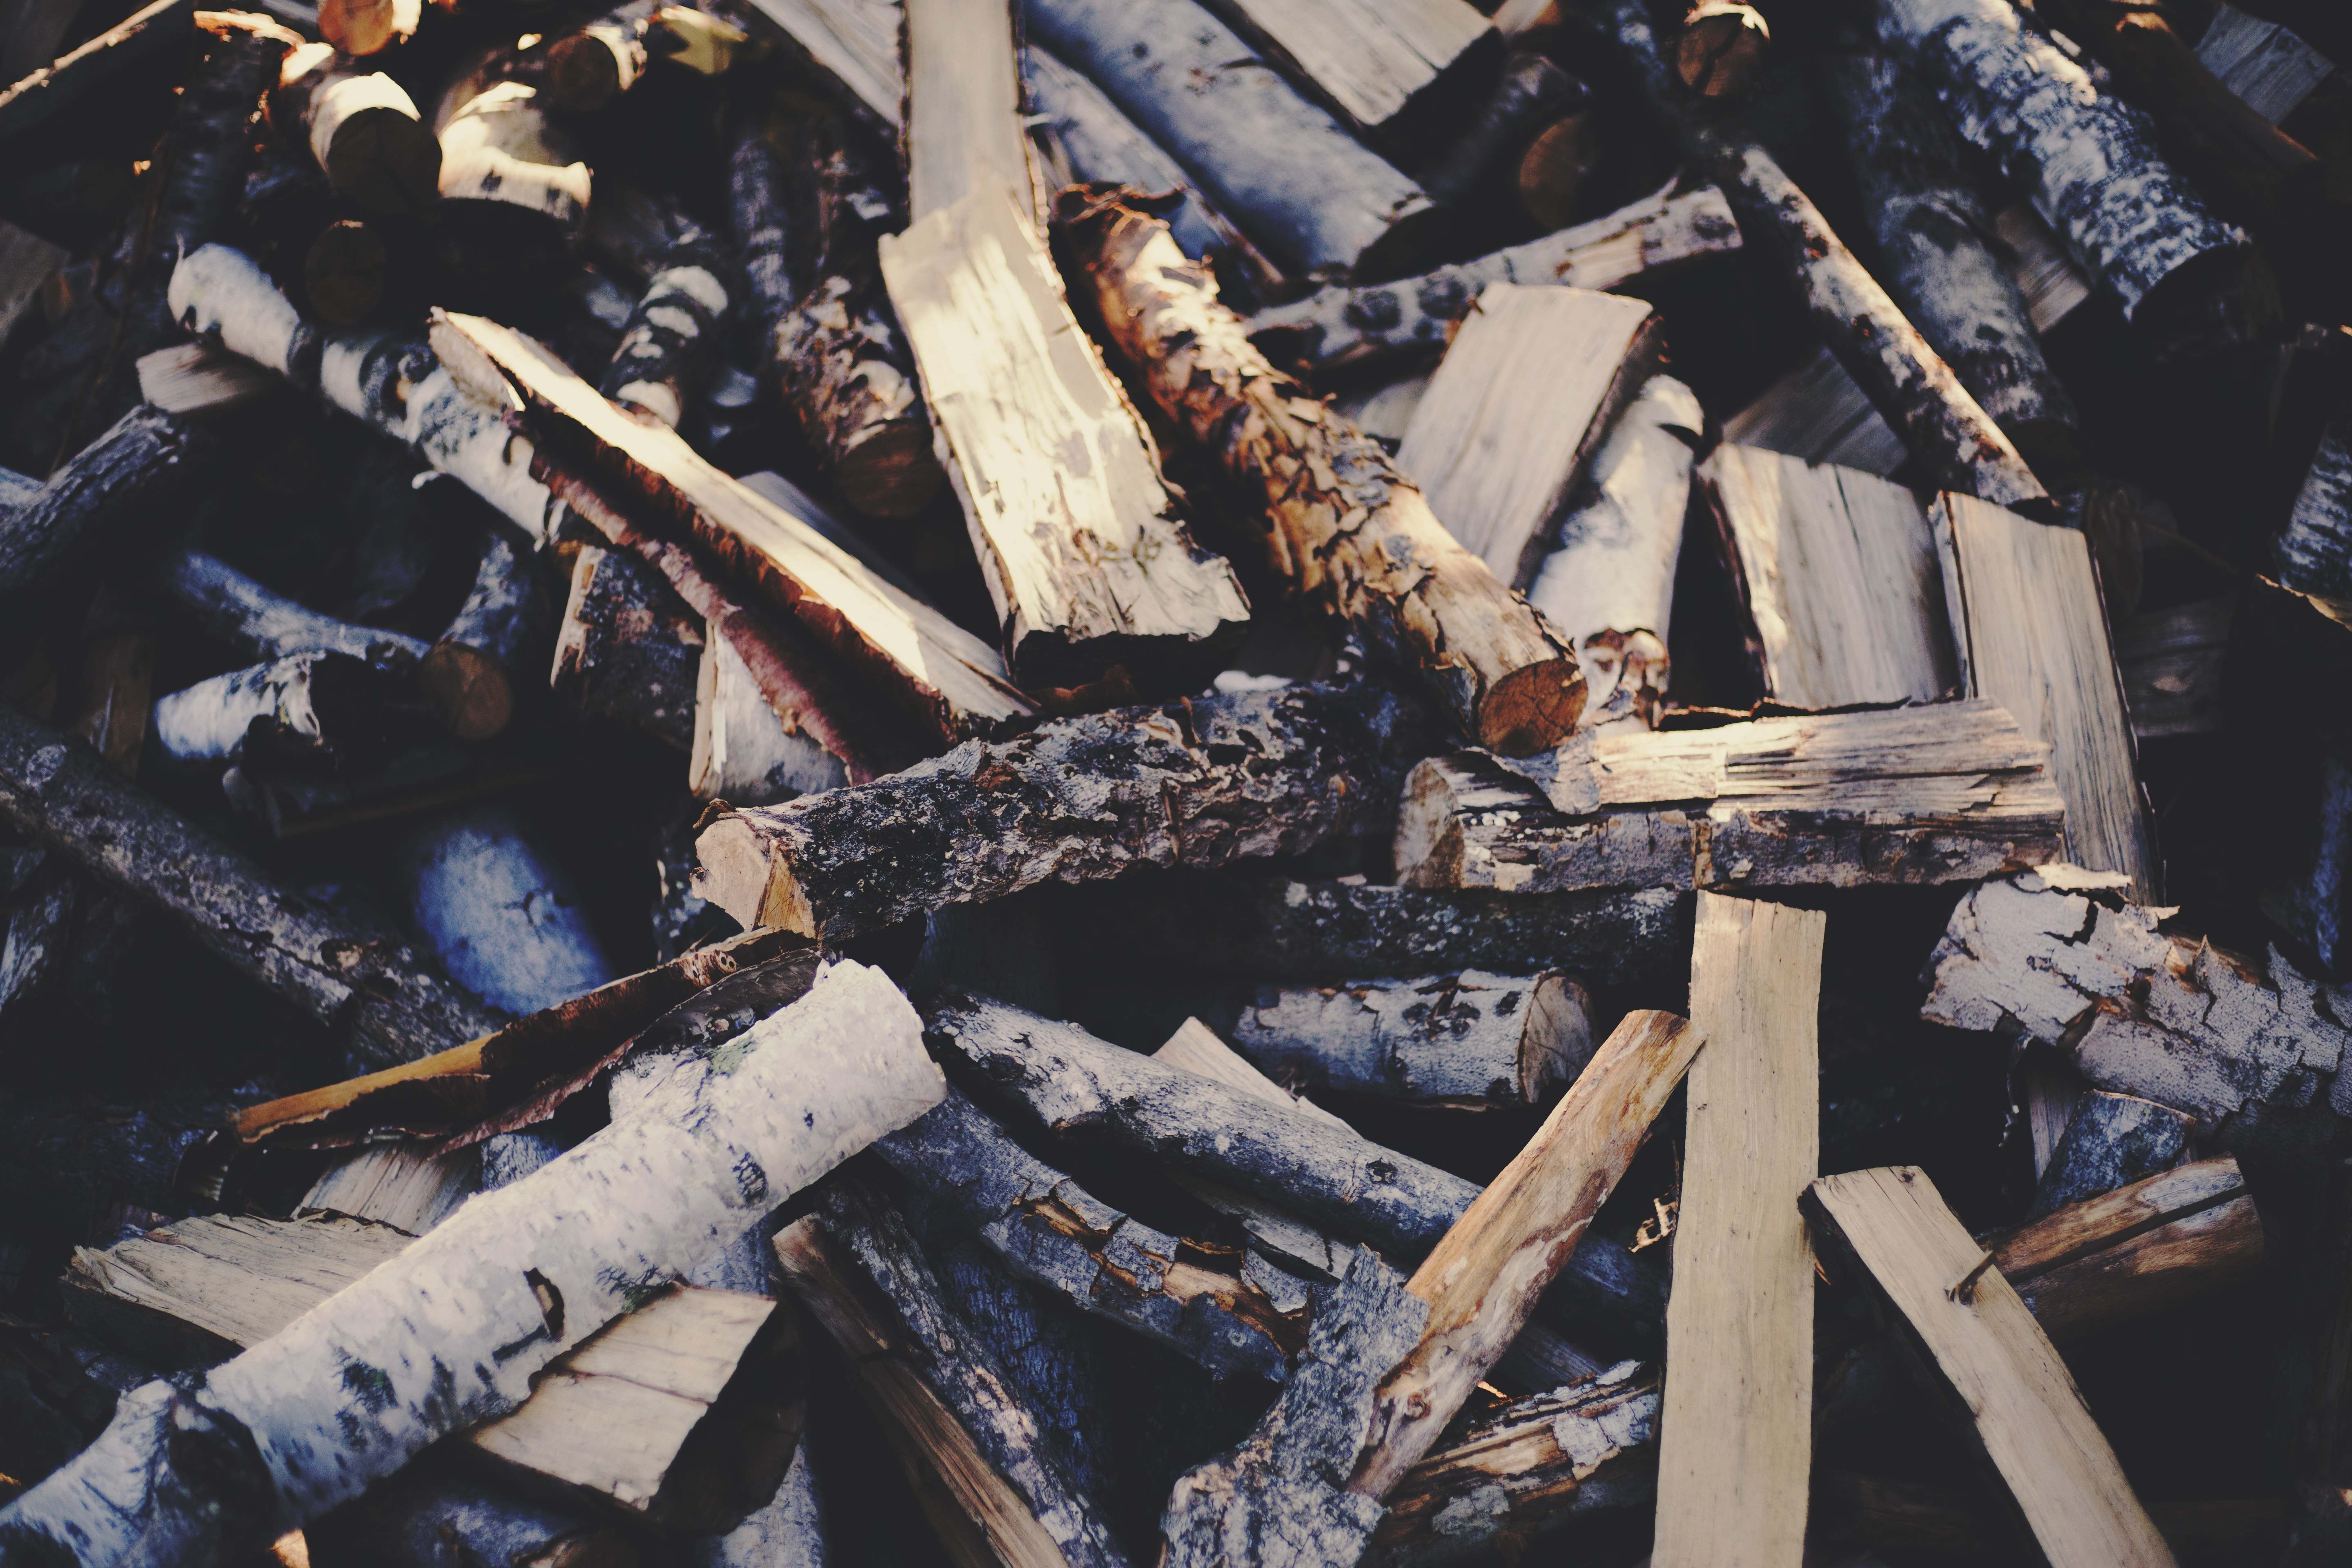 An untidy heap of firewood